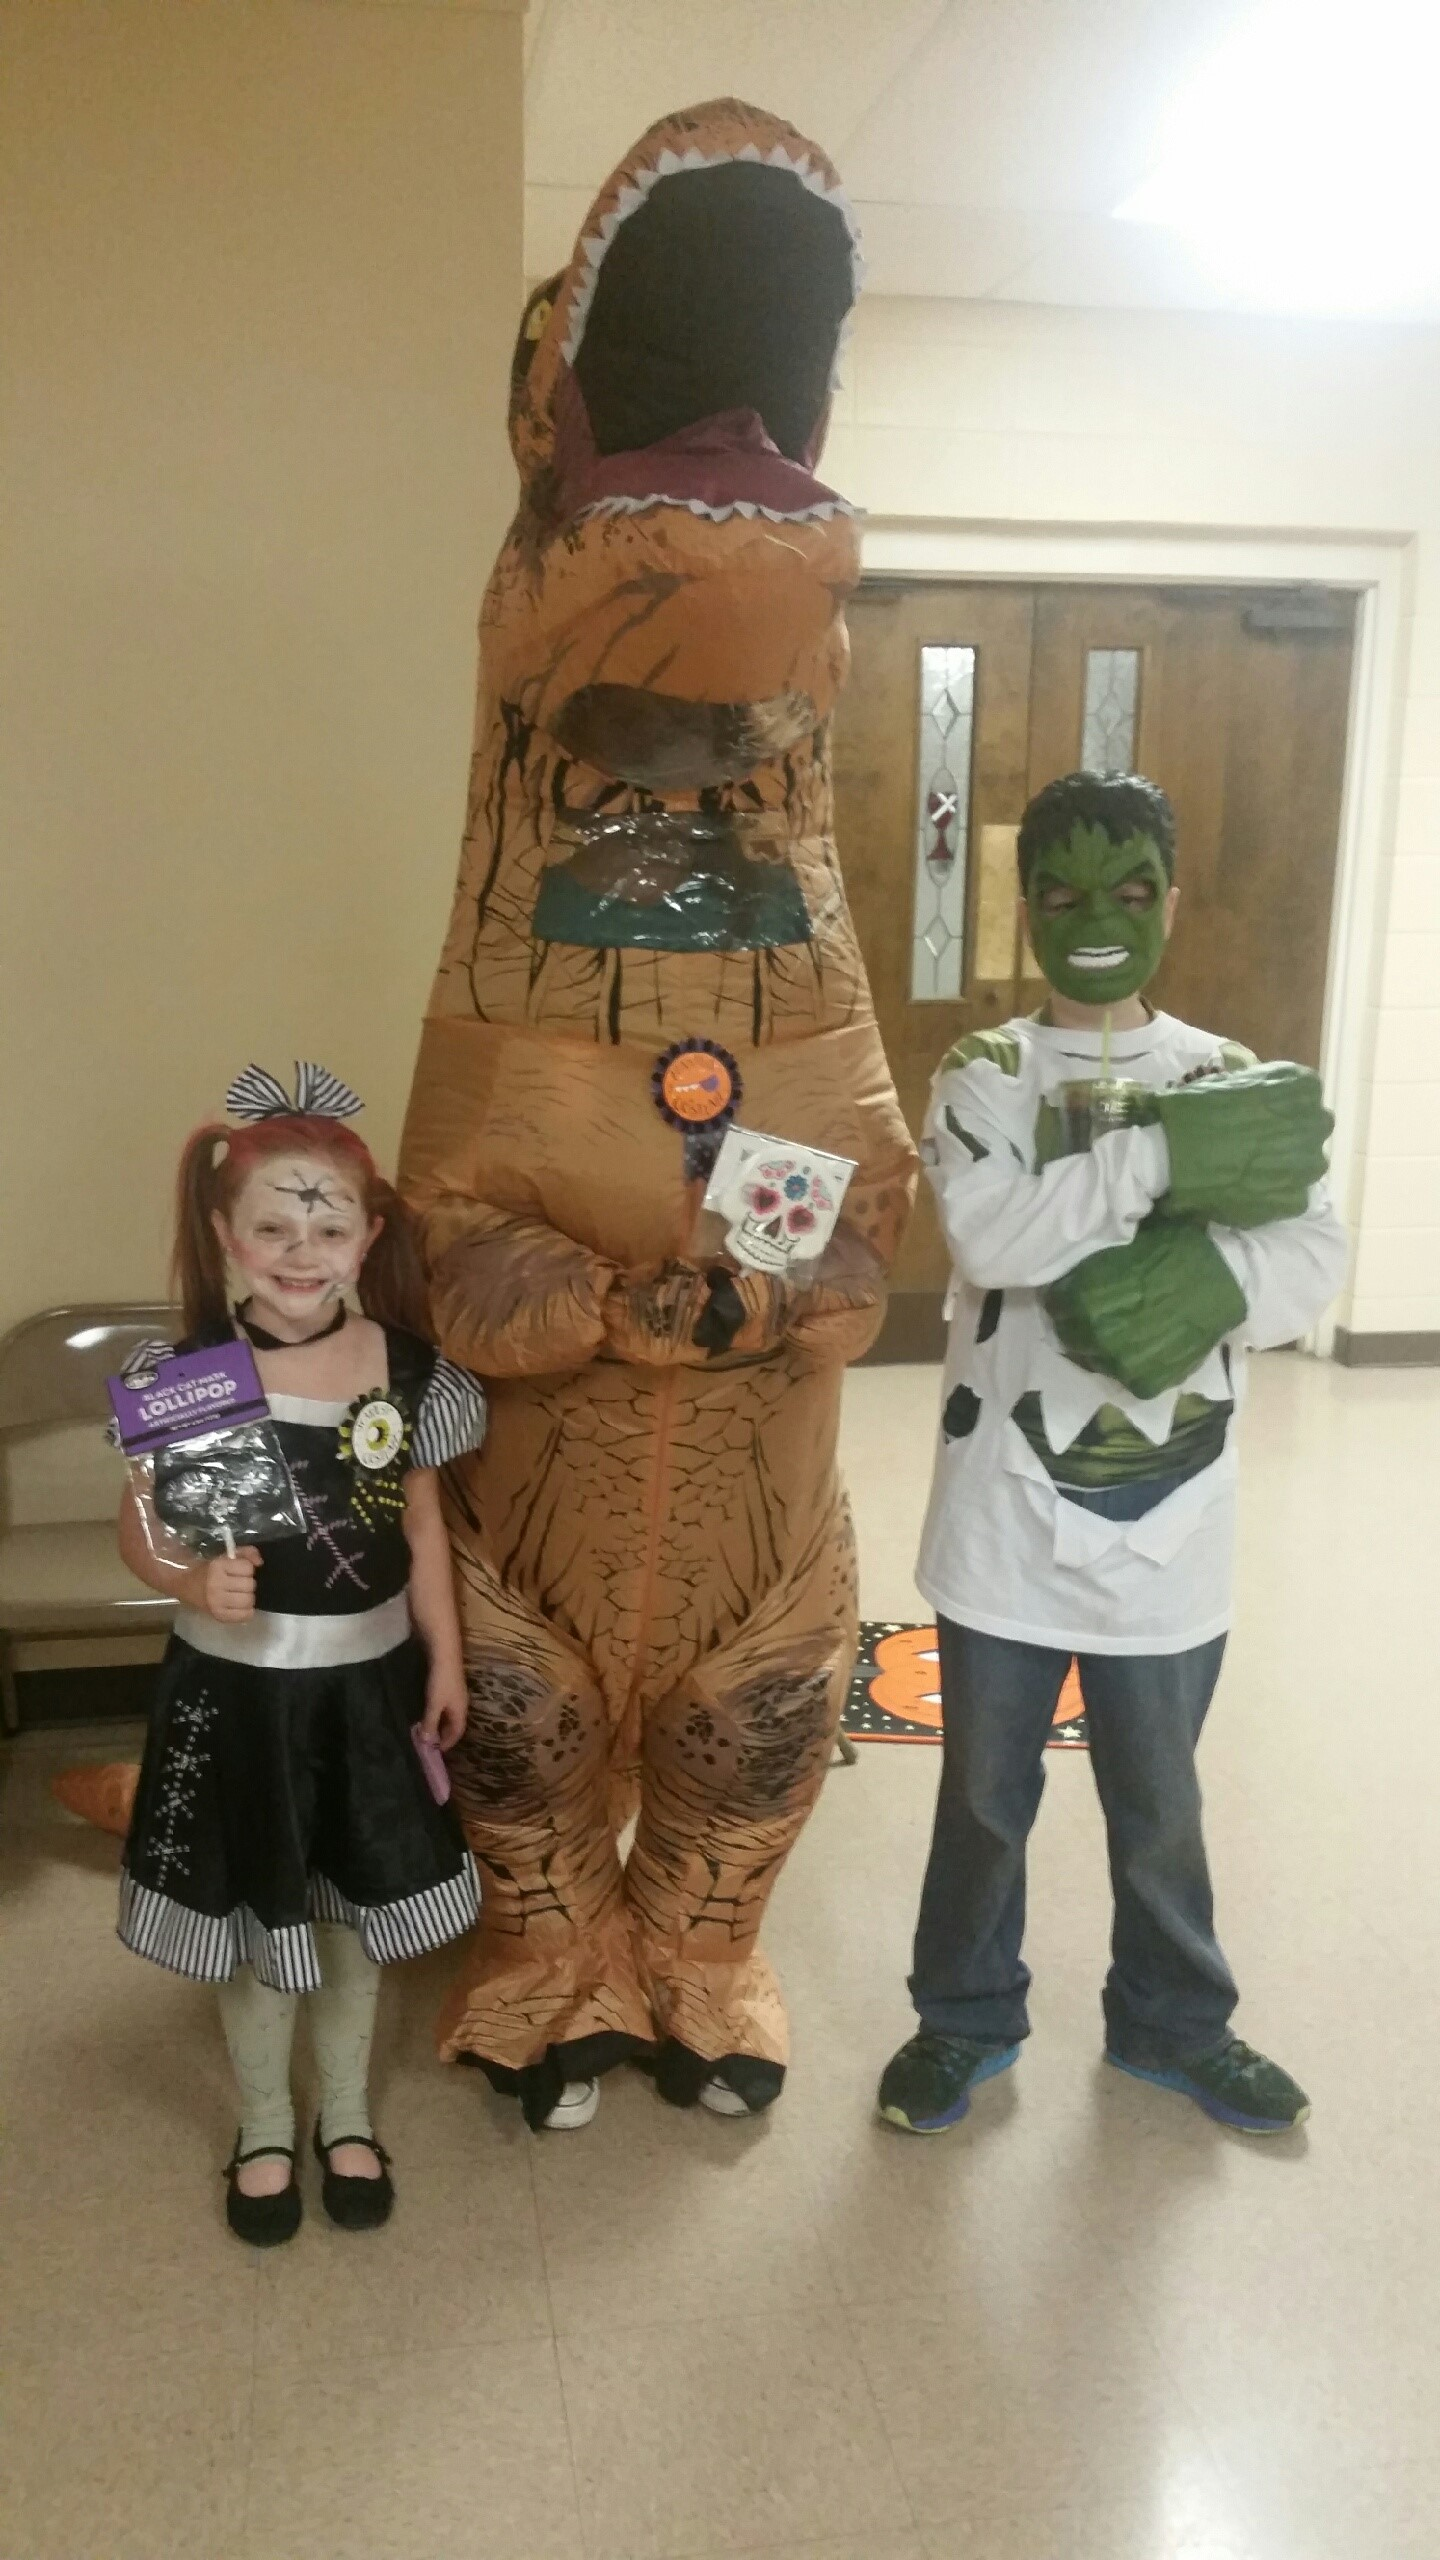 Winners of our costume contest: Carley Grace won scariest costume, Kathryn was funniest costume, and Logan was best costume. Everyone looked great!!